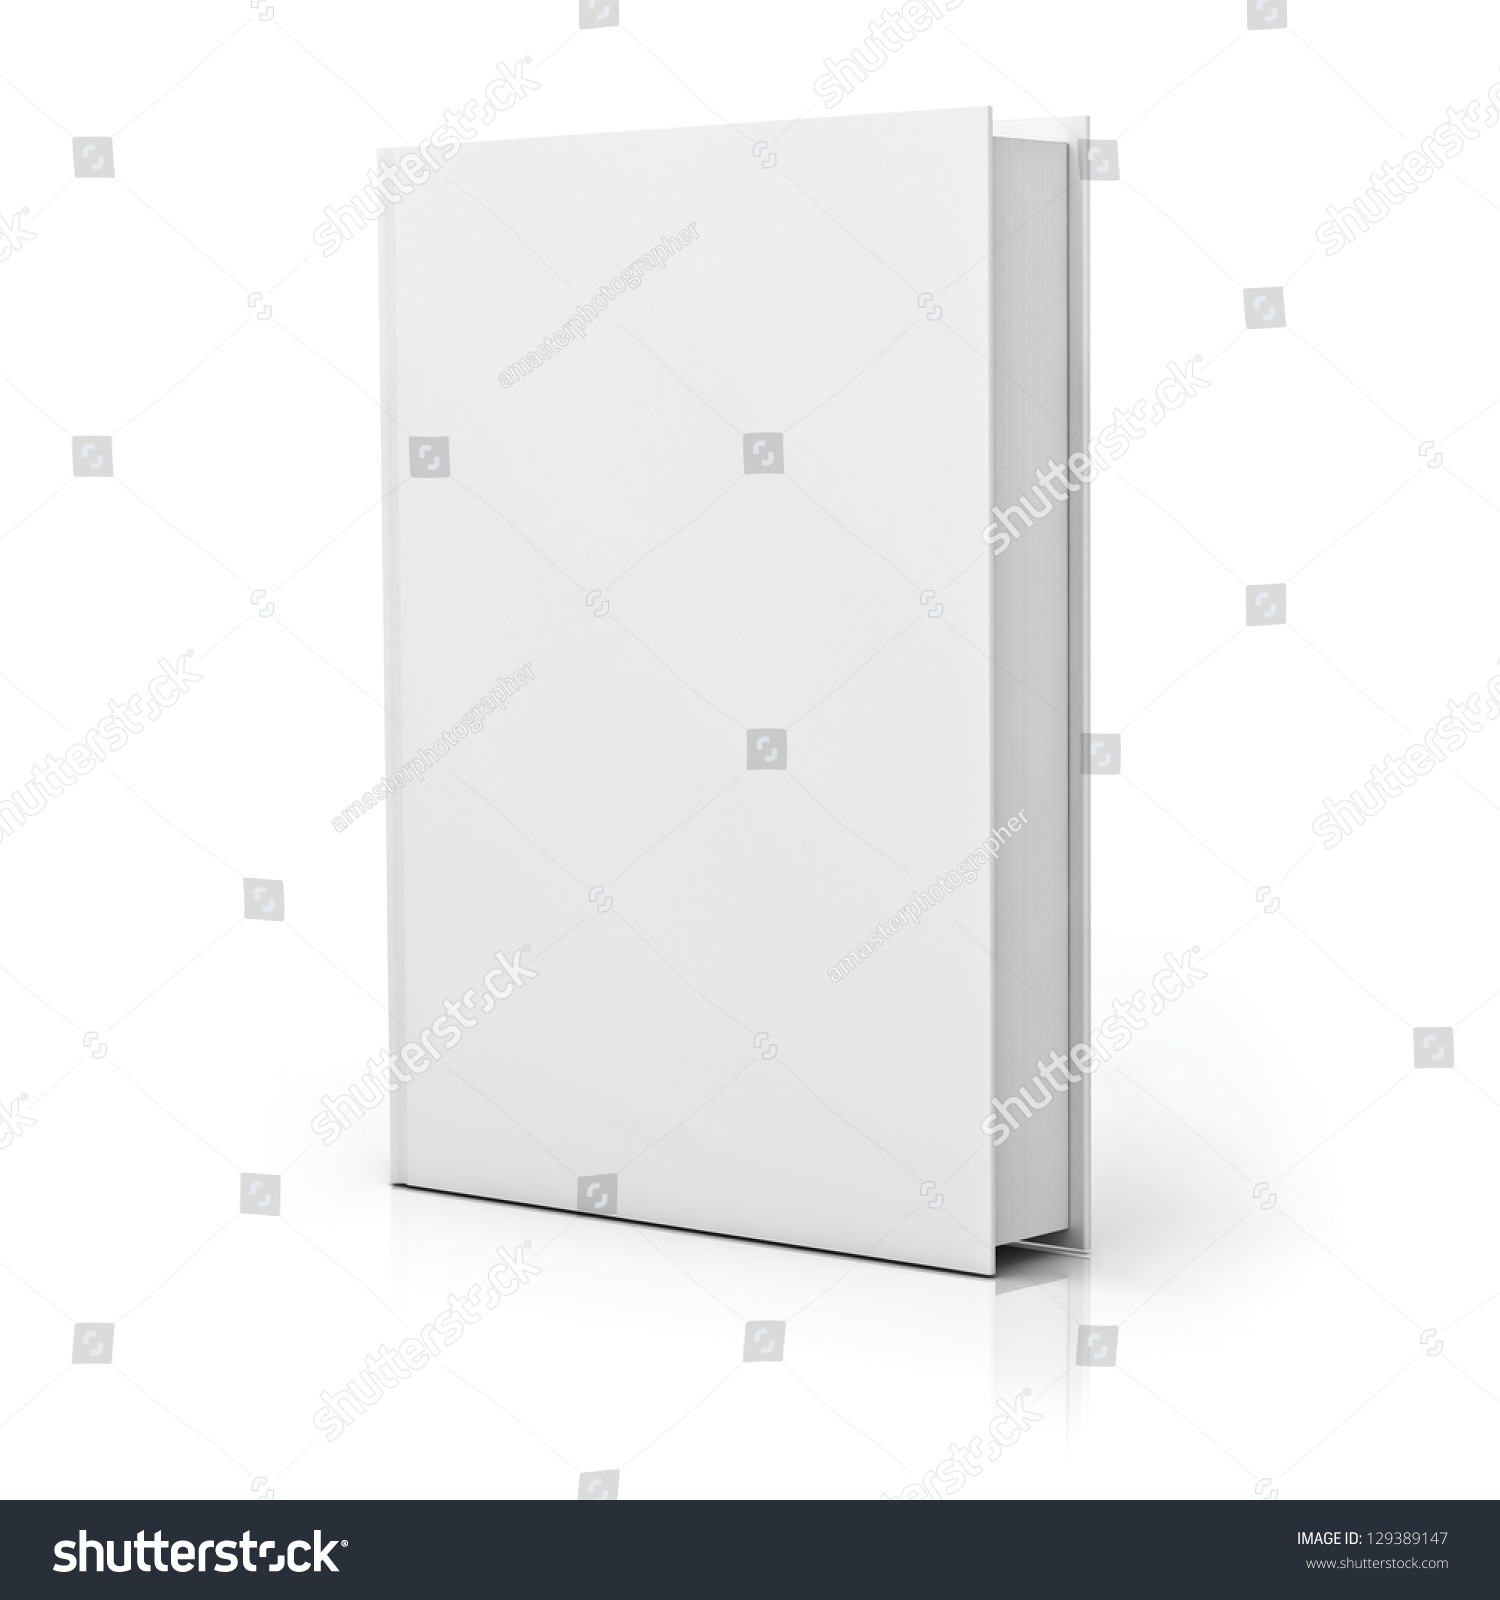 Blank Book Cover Background : Blank book cover over white background stock photo